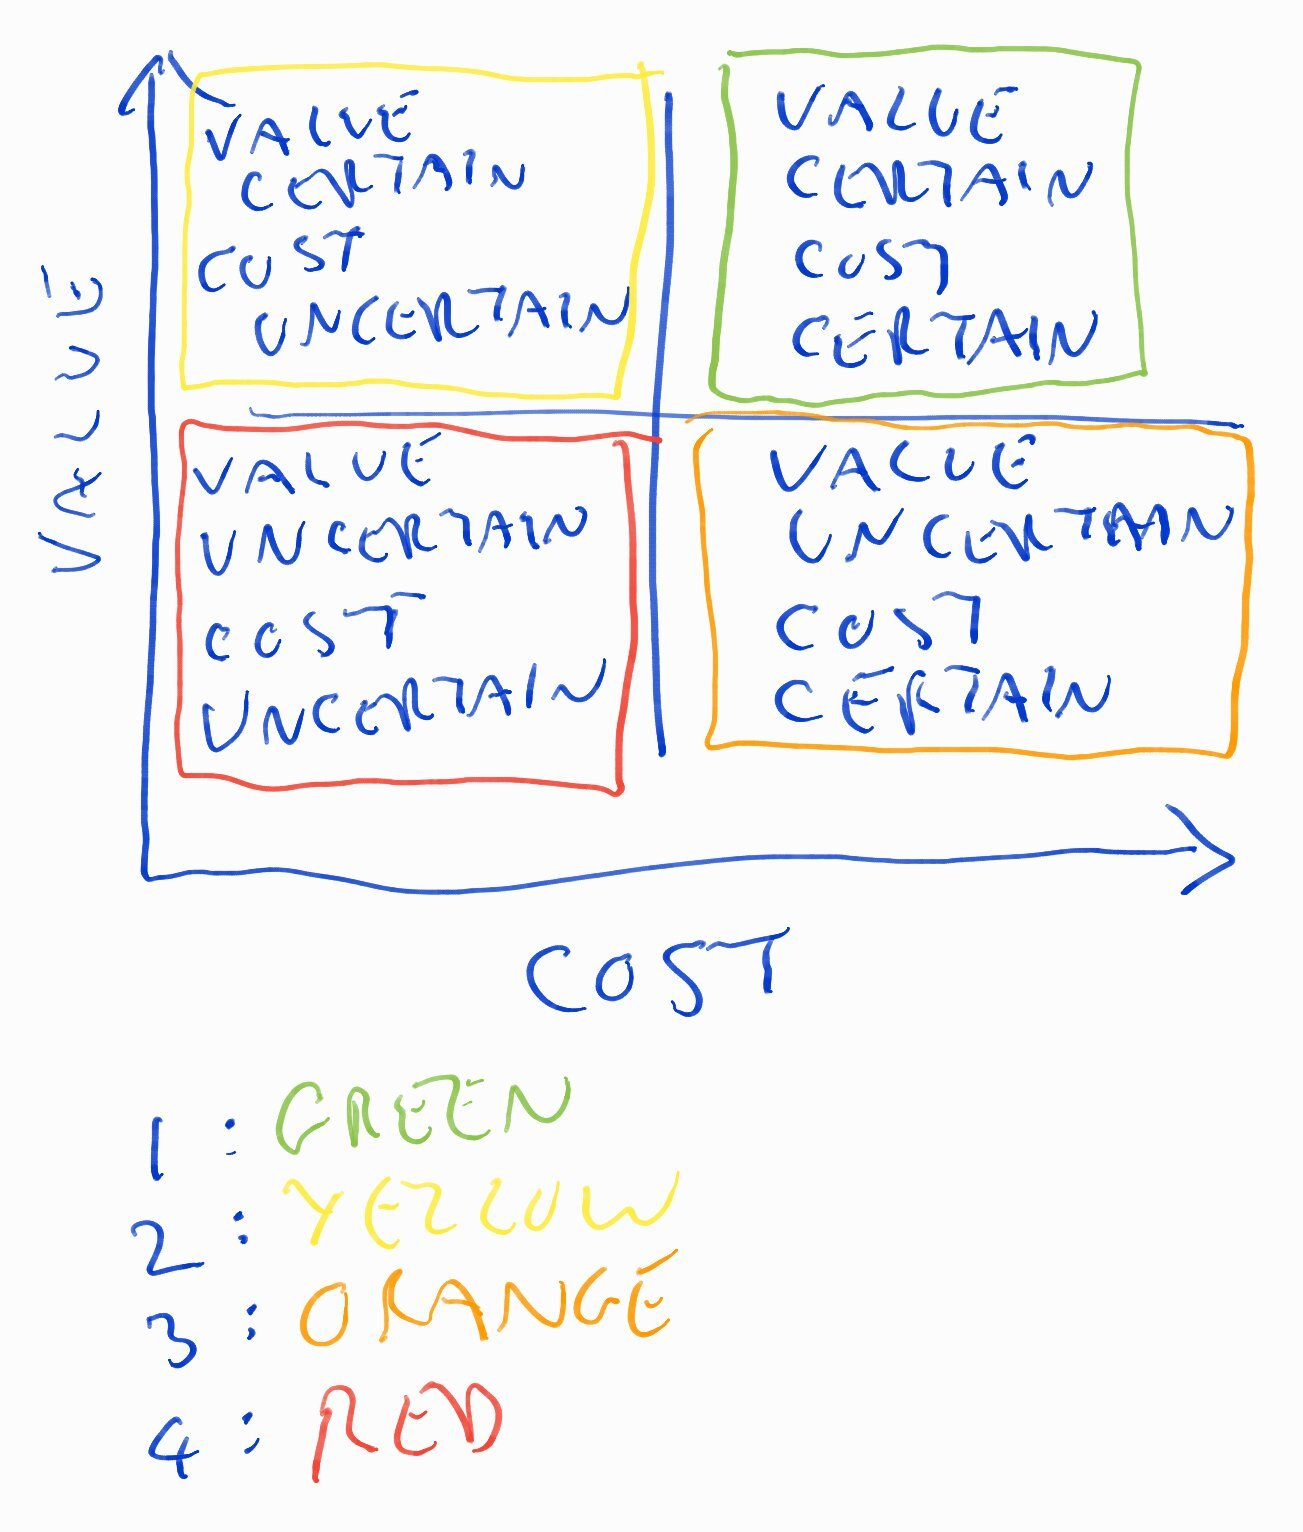 Risk assessment by certainty of cost and value